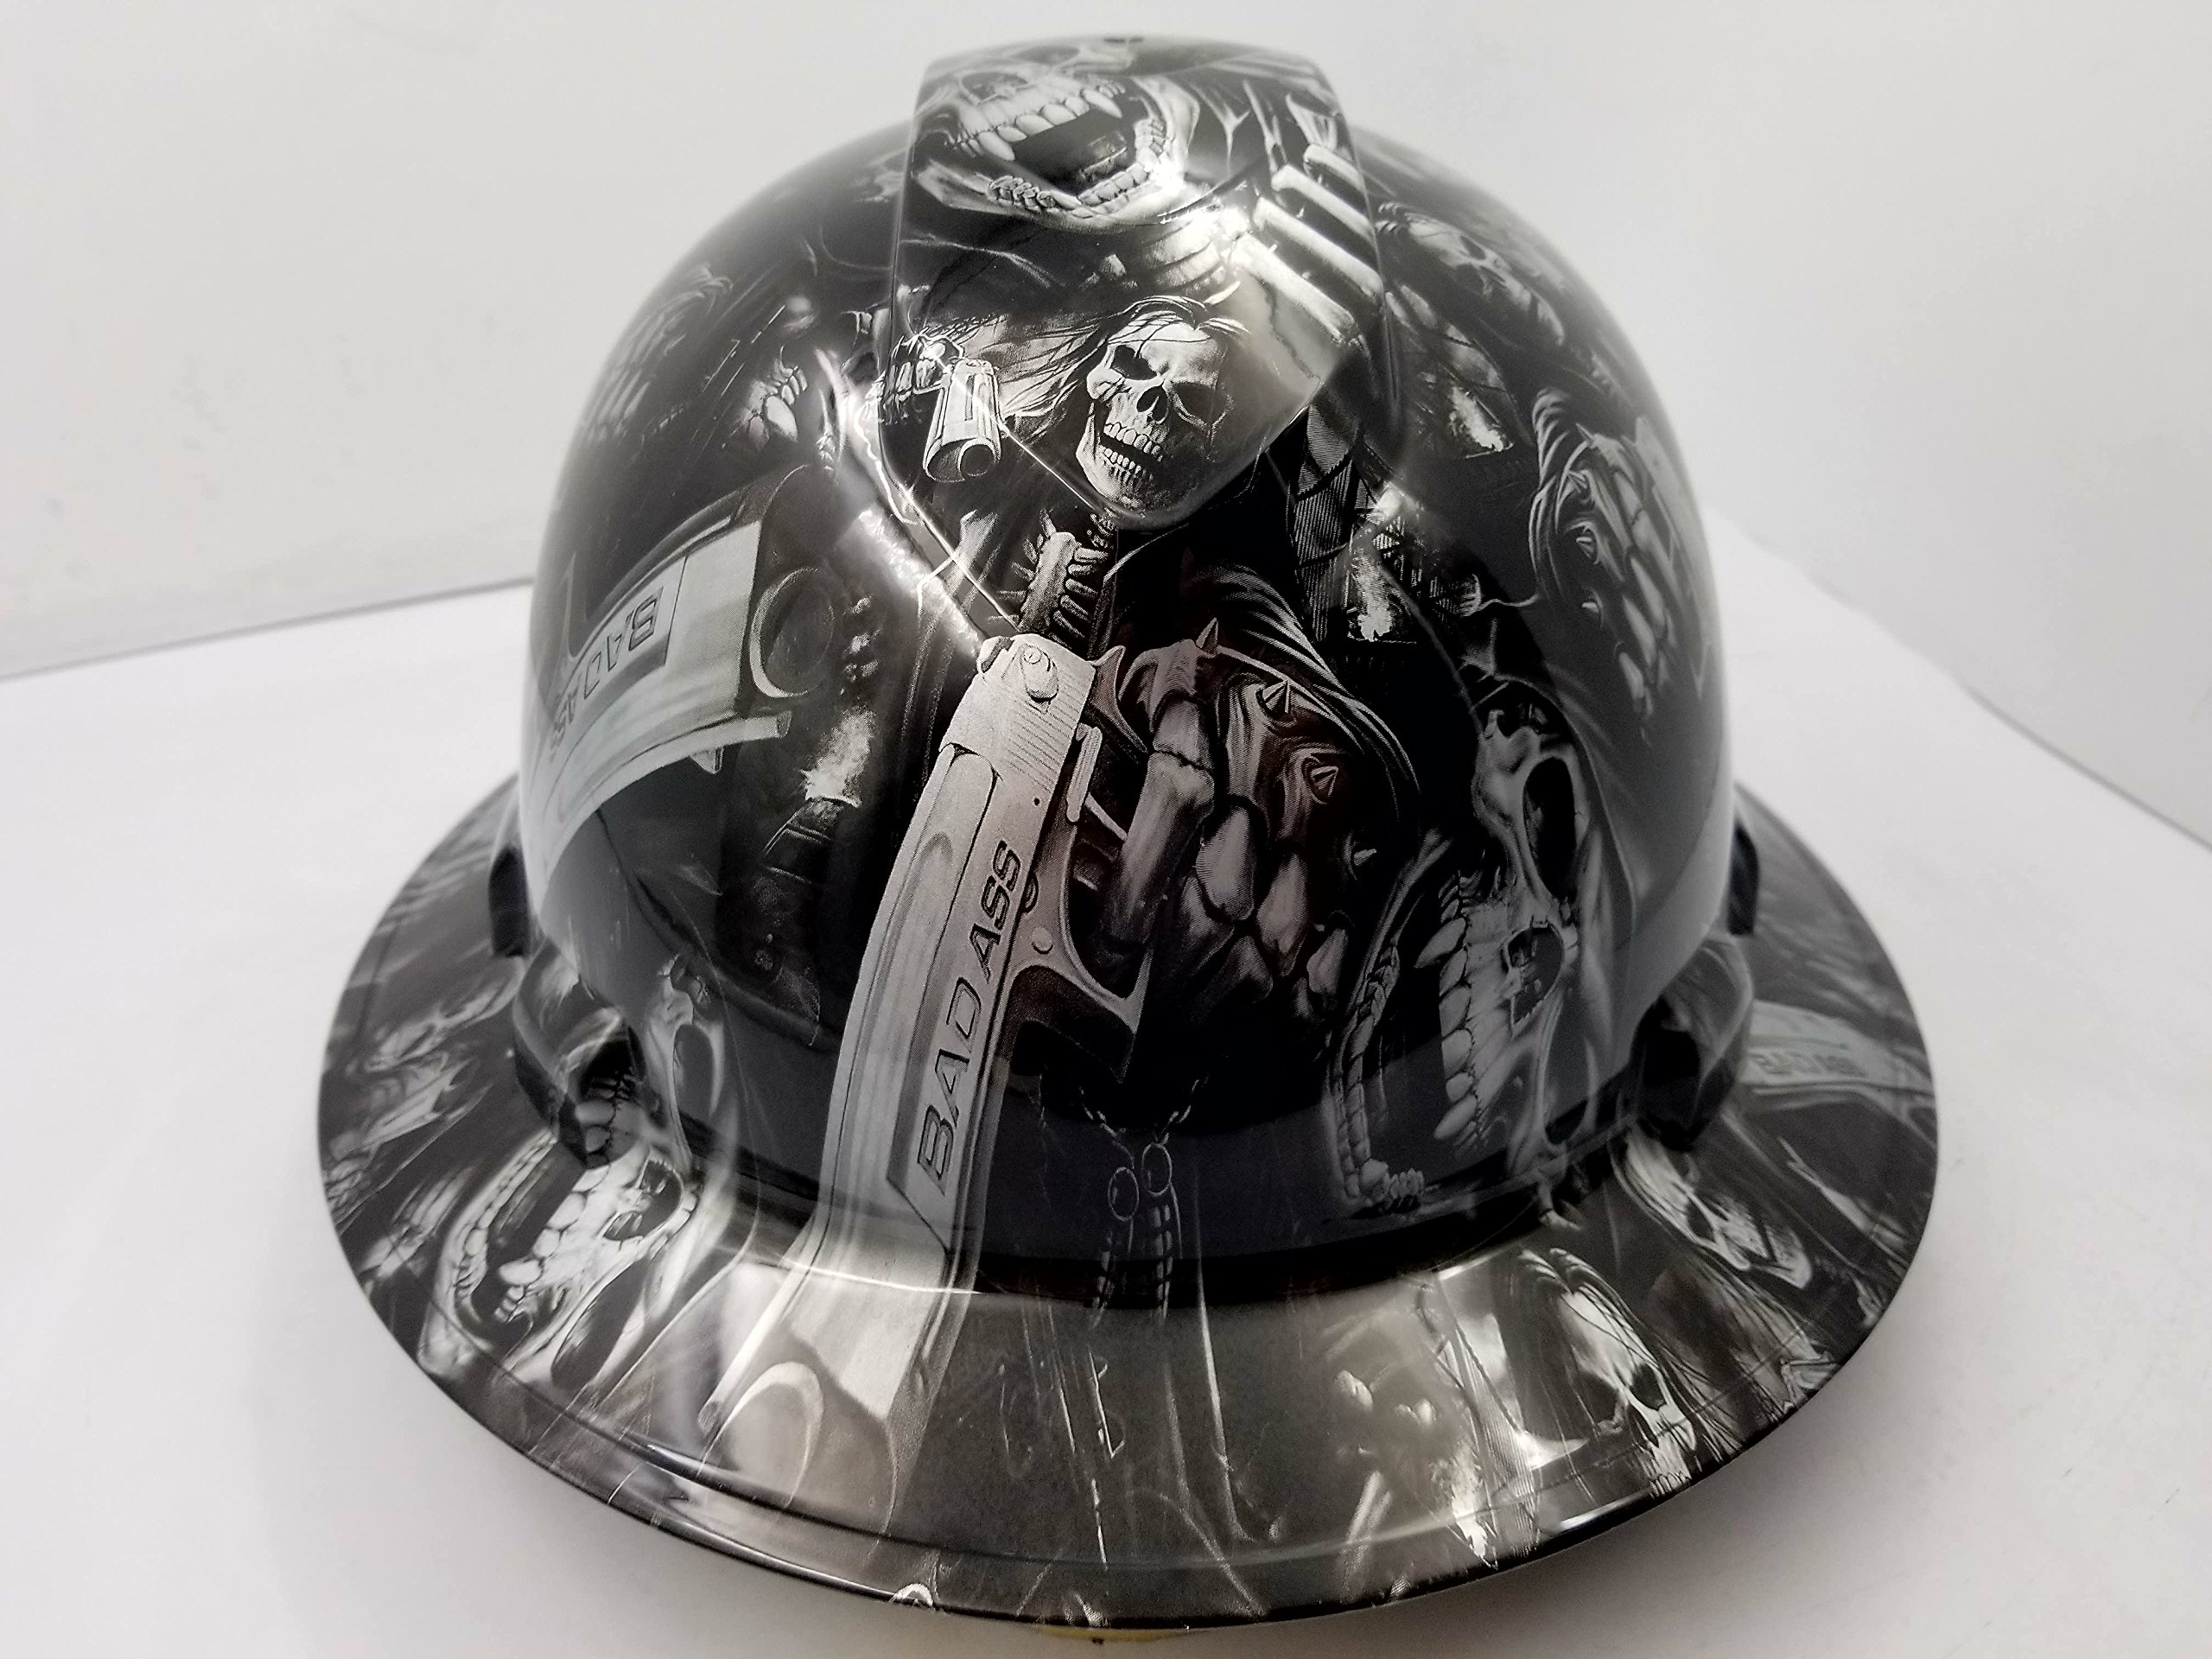 Wet Works Imaging Customized Pyramex Full Brim GRIM REAPER SKULL SHOOTER HARD HAT With Ratcheting Suspension CUSTOM LIDS CRAZY SICK CONSTRUCTION PPE